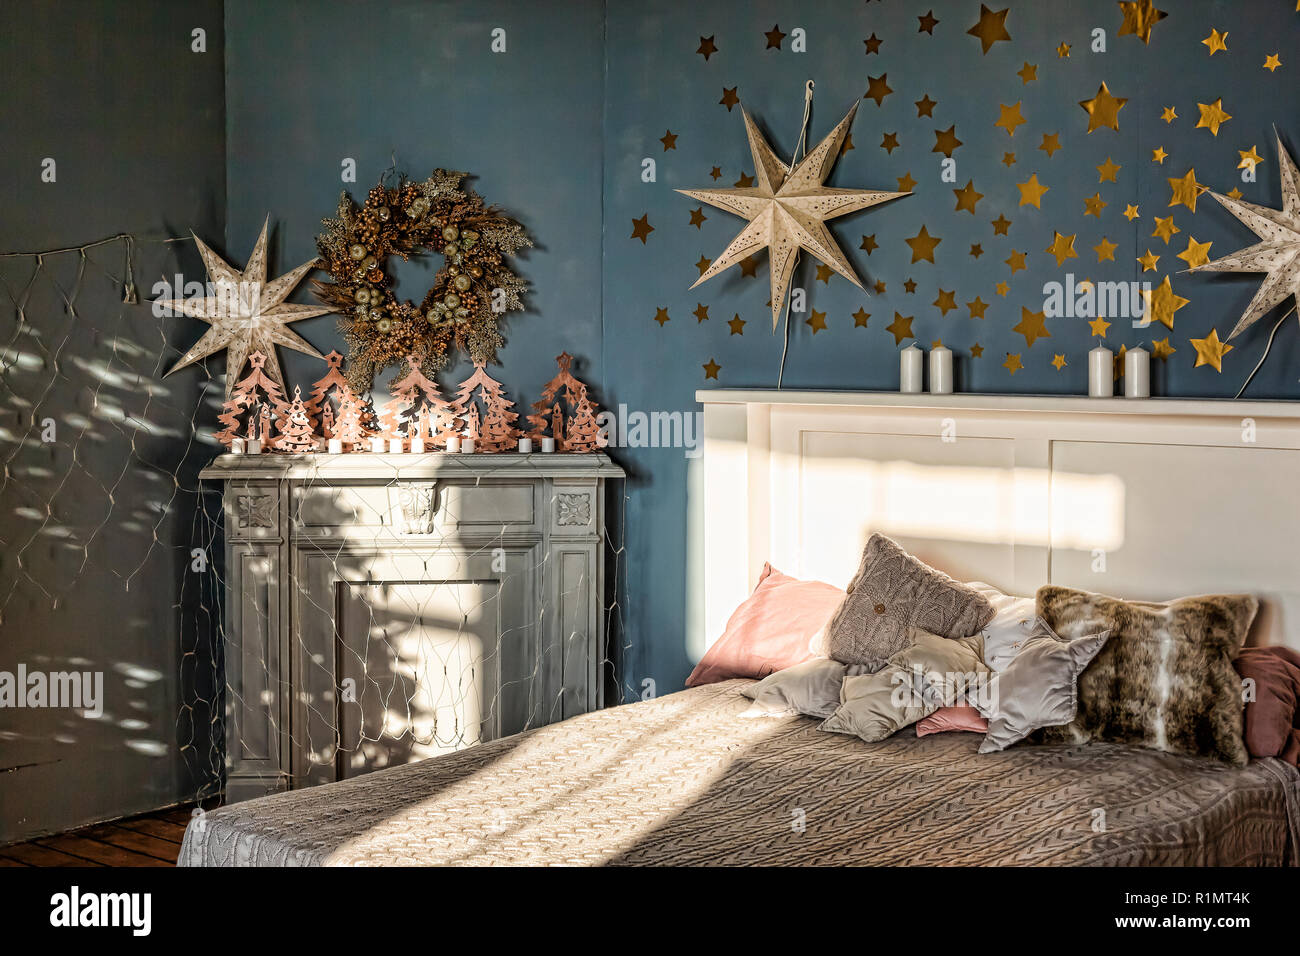 Christmas, New Year, Family Holiday Concept. Bedroom ...